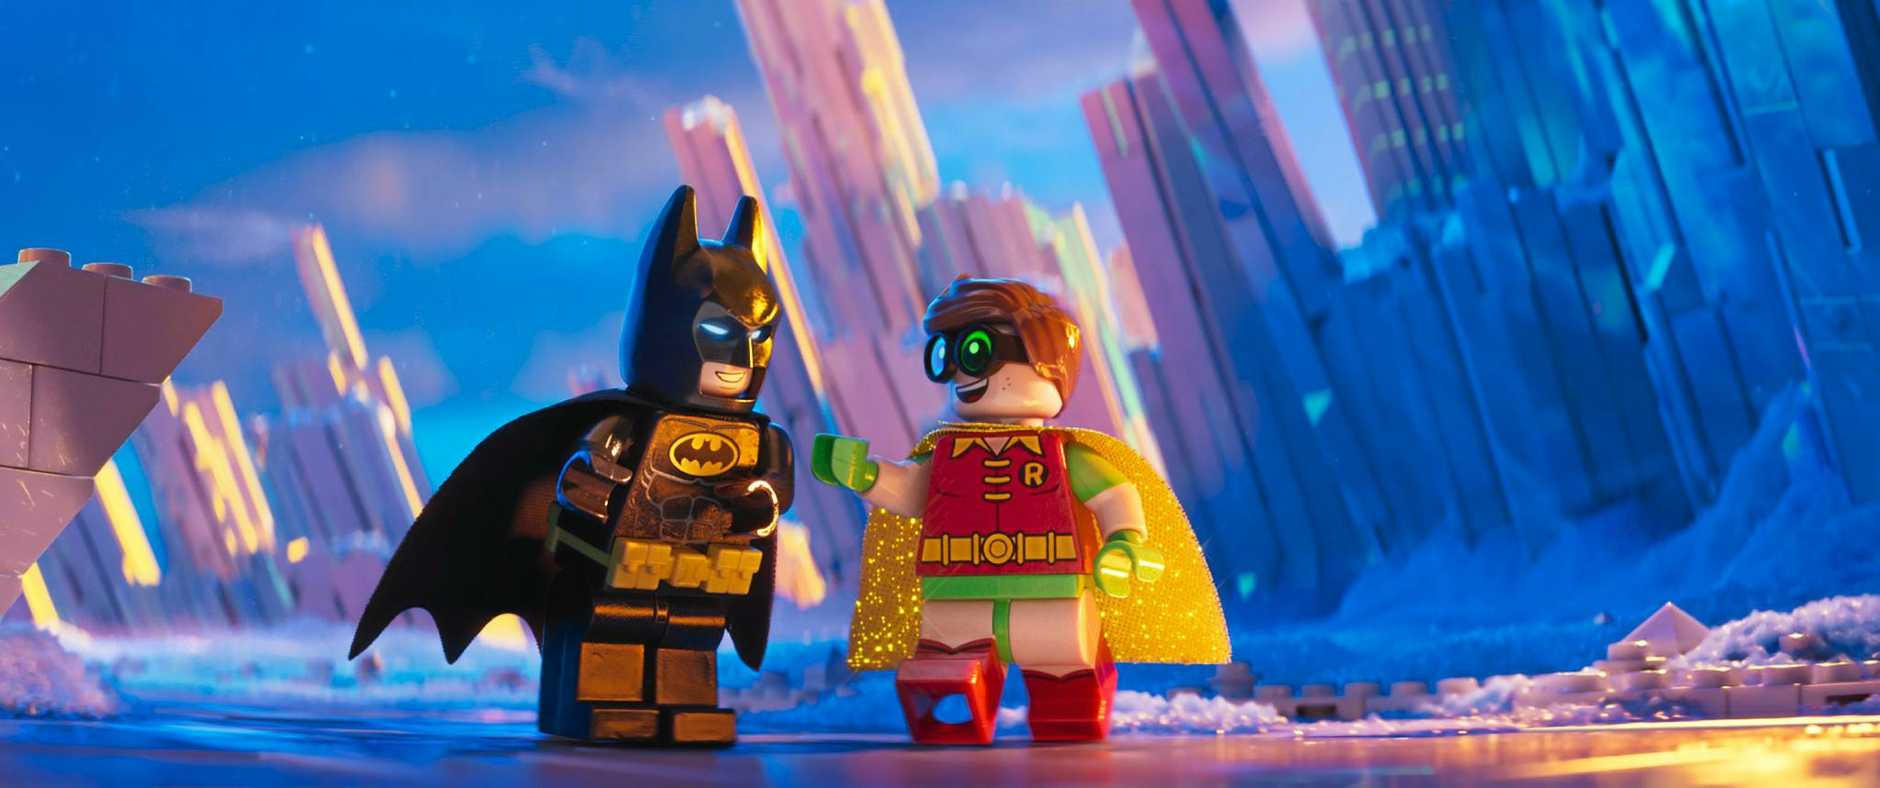 The characters Batman and Robin in a scene from The LEGO Batman Movie. Supplied by Warner Bros.